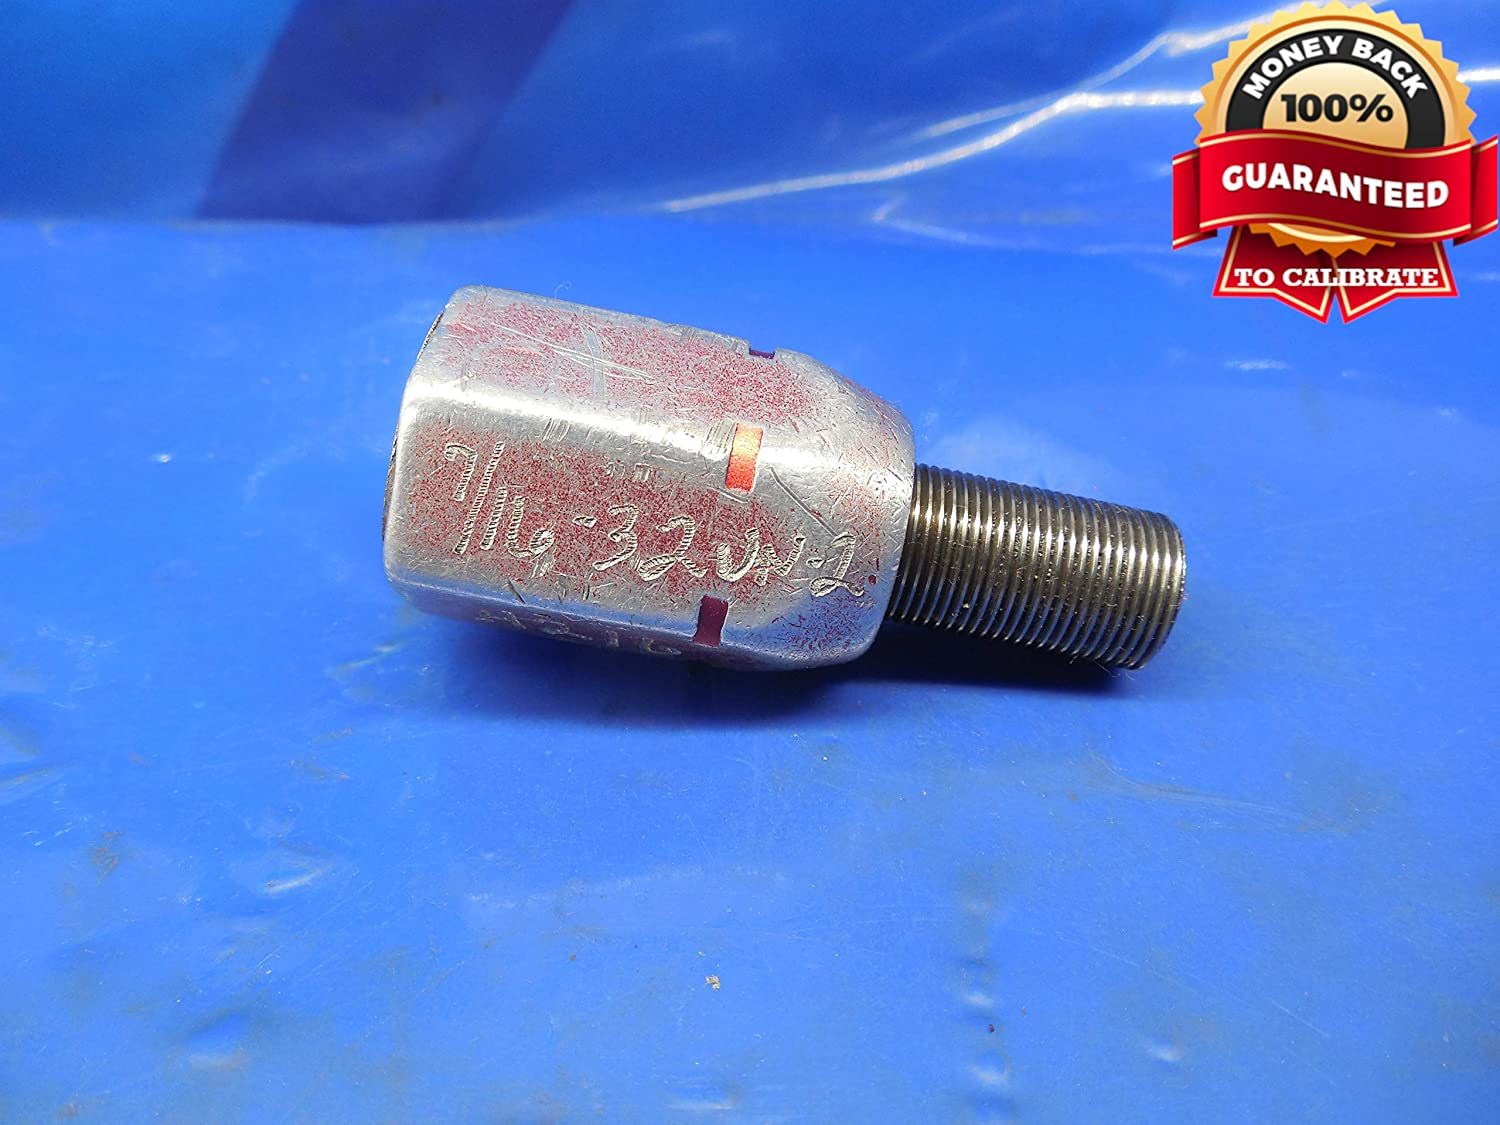 7/16 32 UN 2B Thread Plug GAGE .4375 NO GO ONLY P.D. = .4216 7/16-32 N-2 UN-2